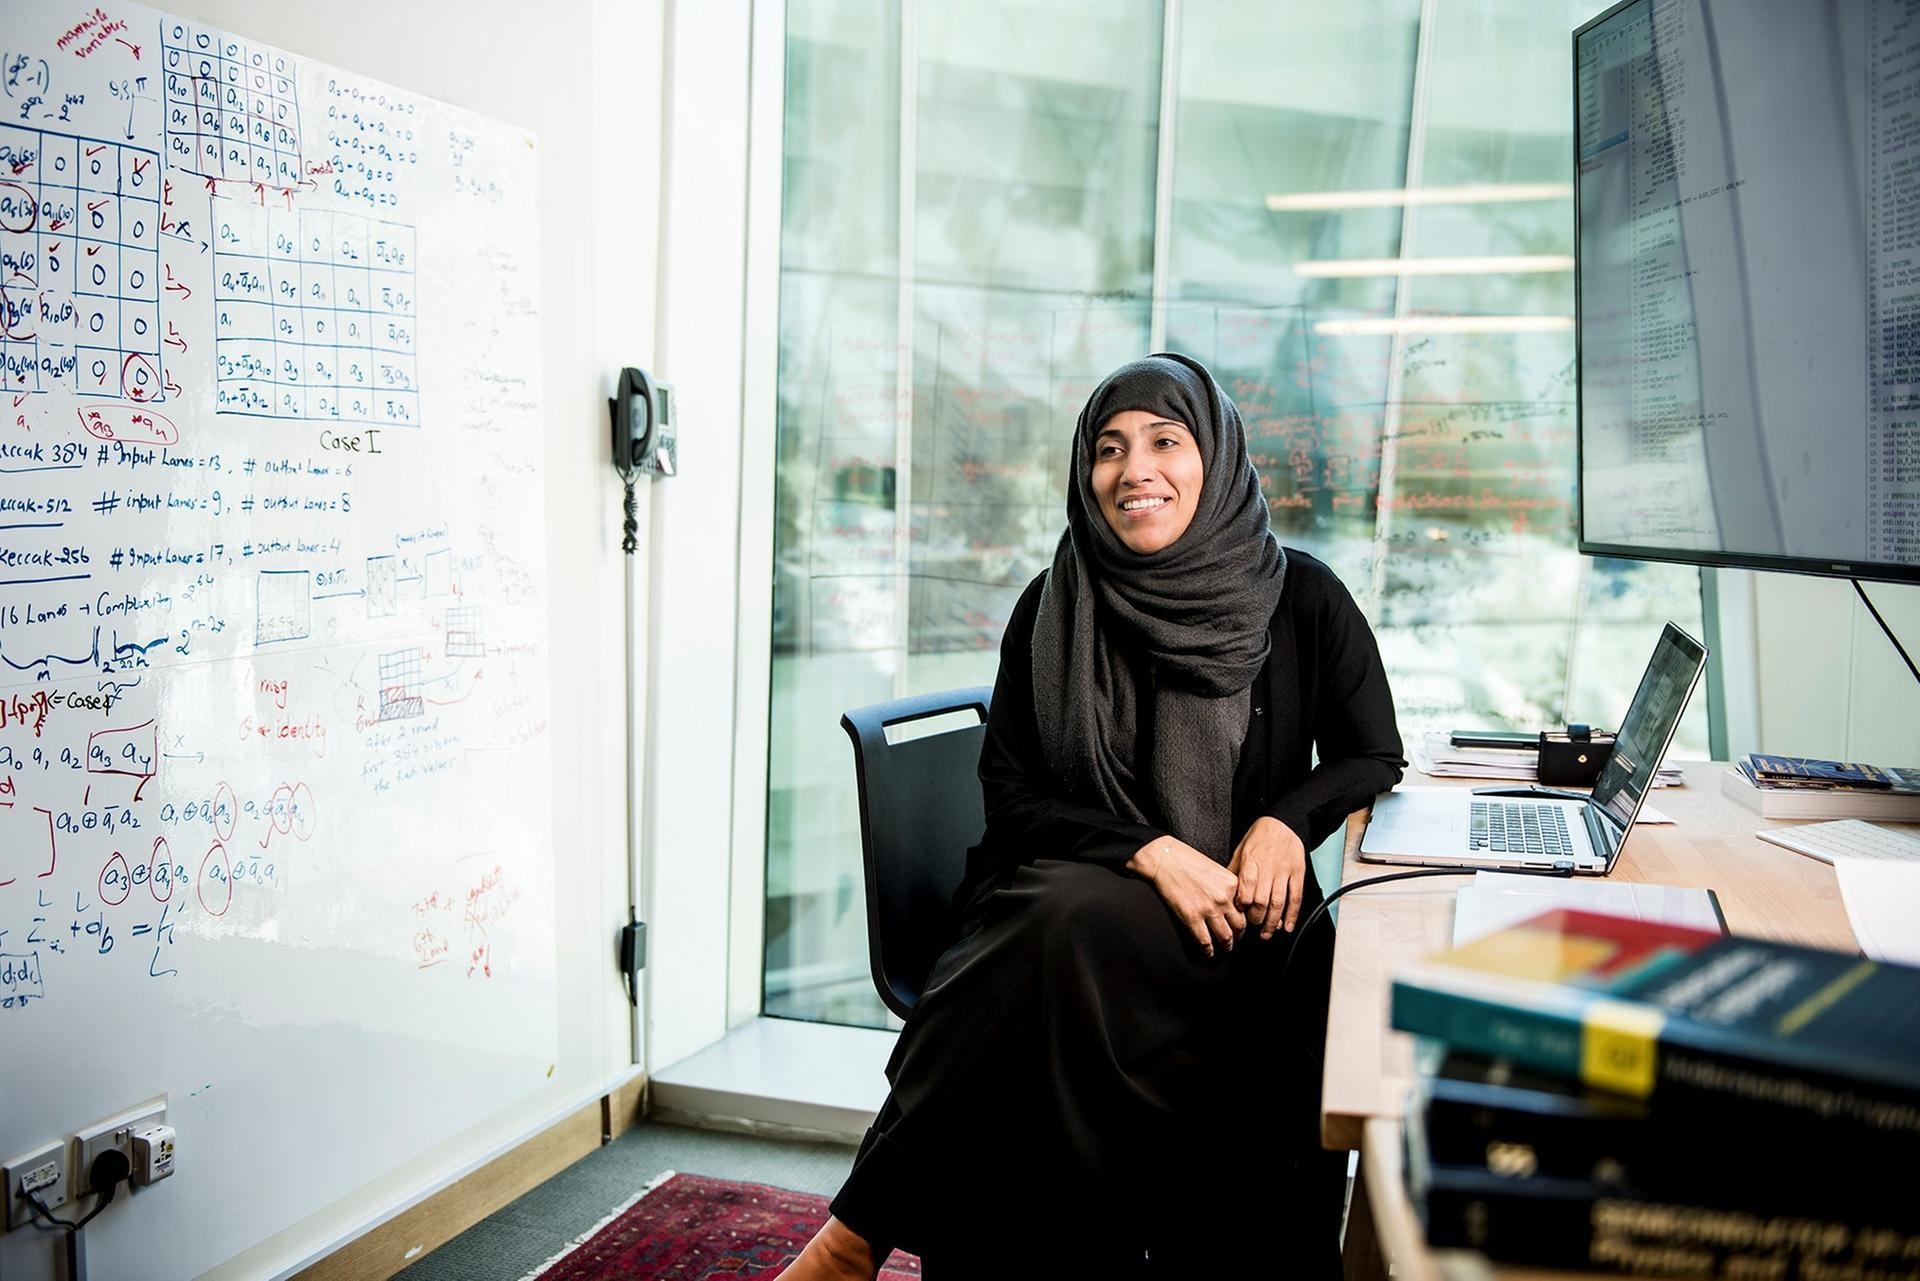 UAE women's rights champion finding a formula for gender equality in the sciences